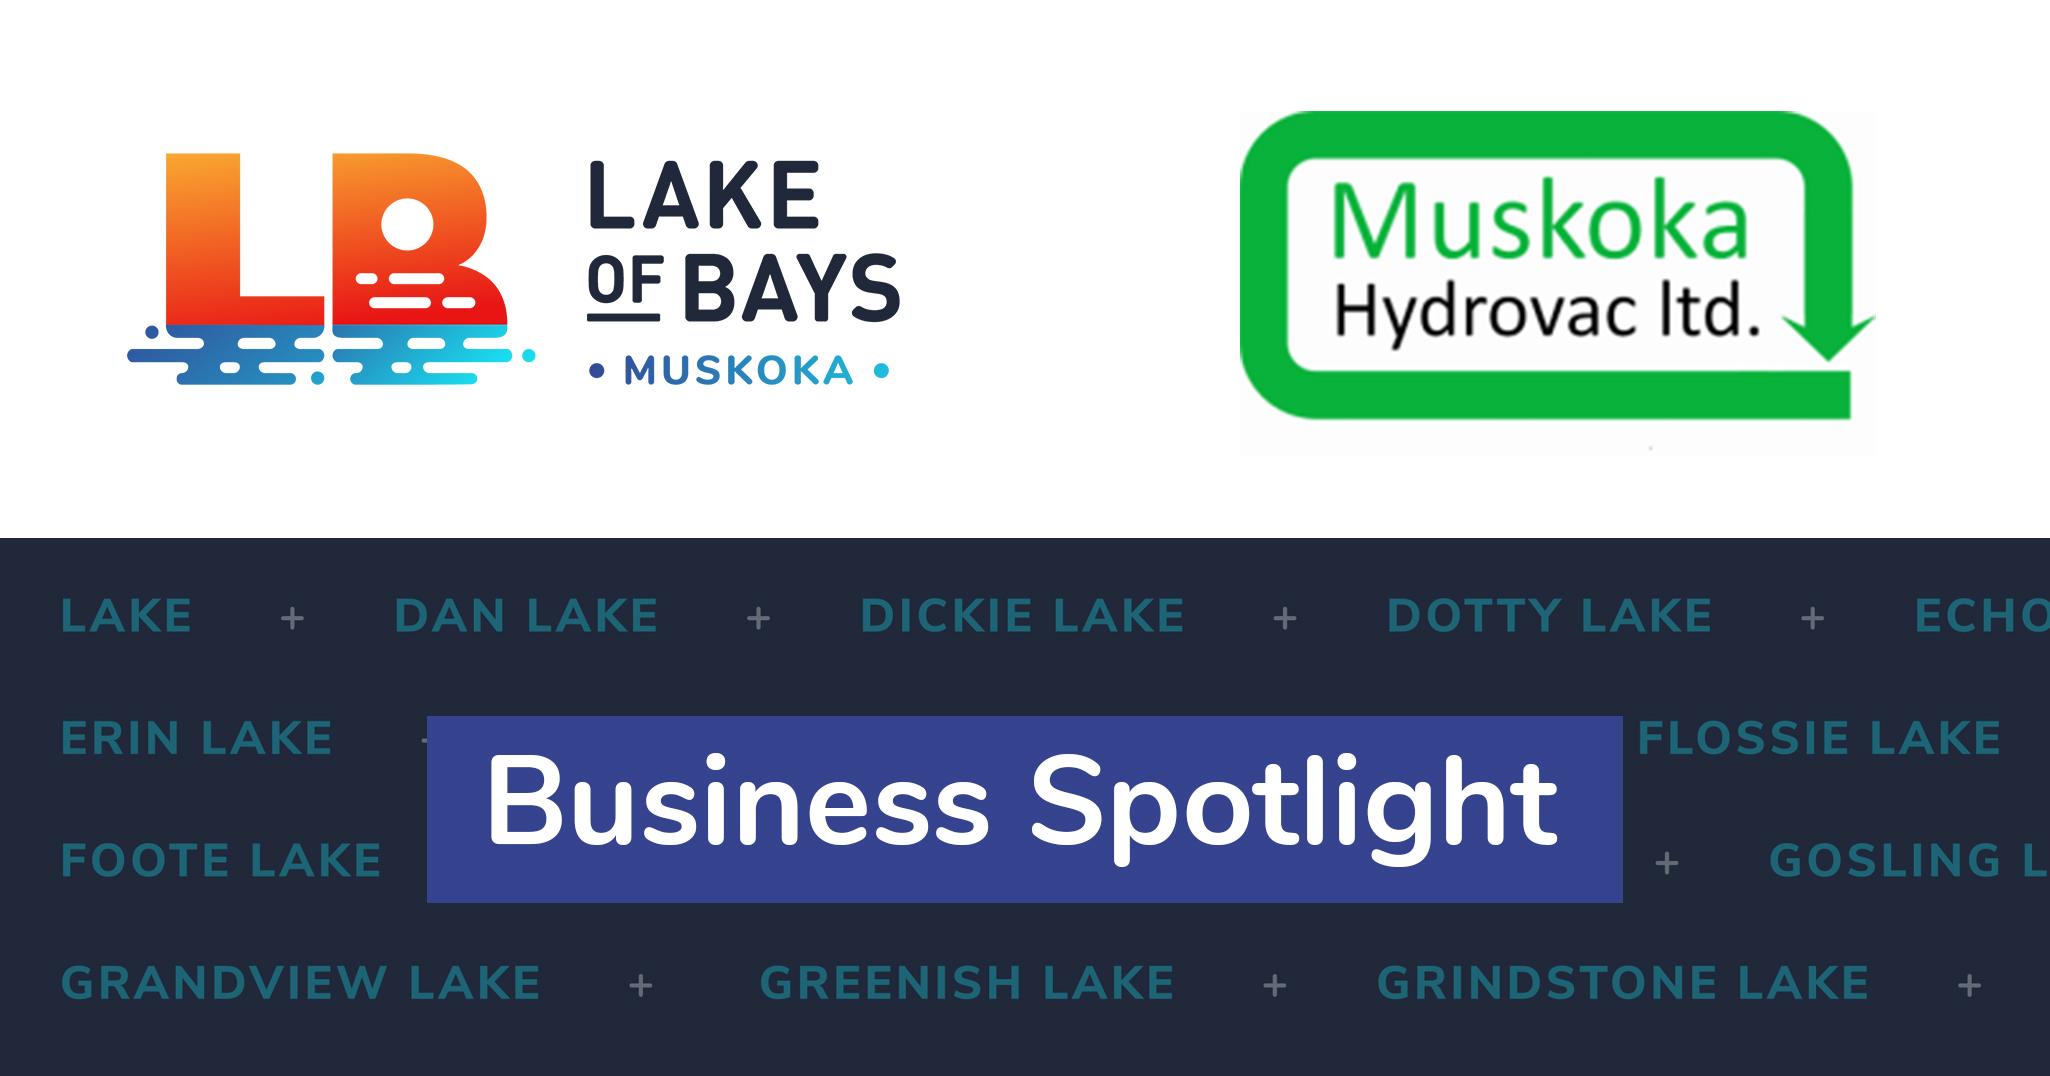 Business Spotlight - Muskoka Hydrovac